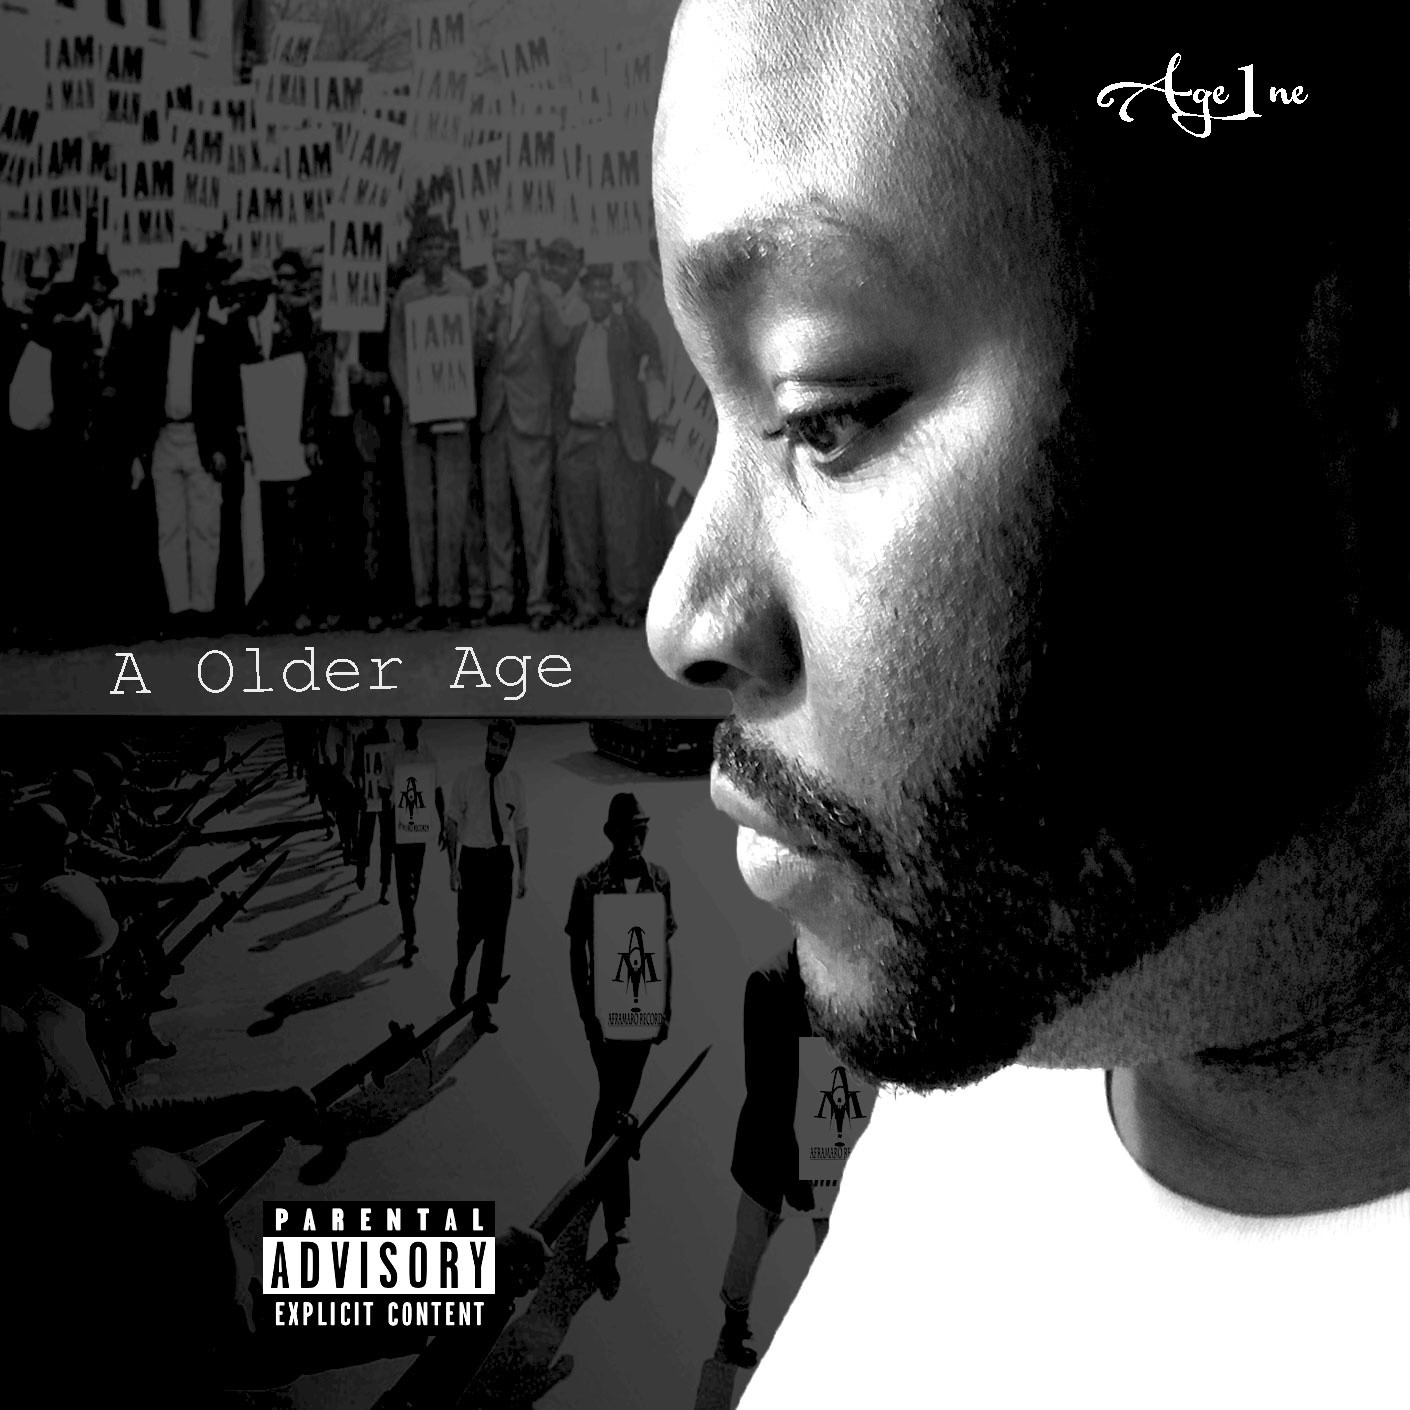 Aolderage-cover-finish